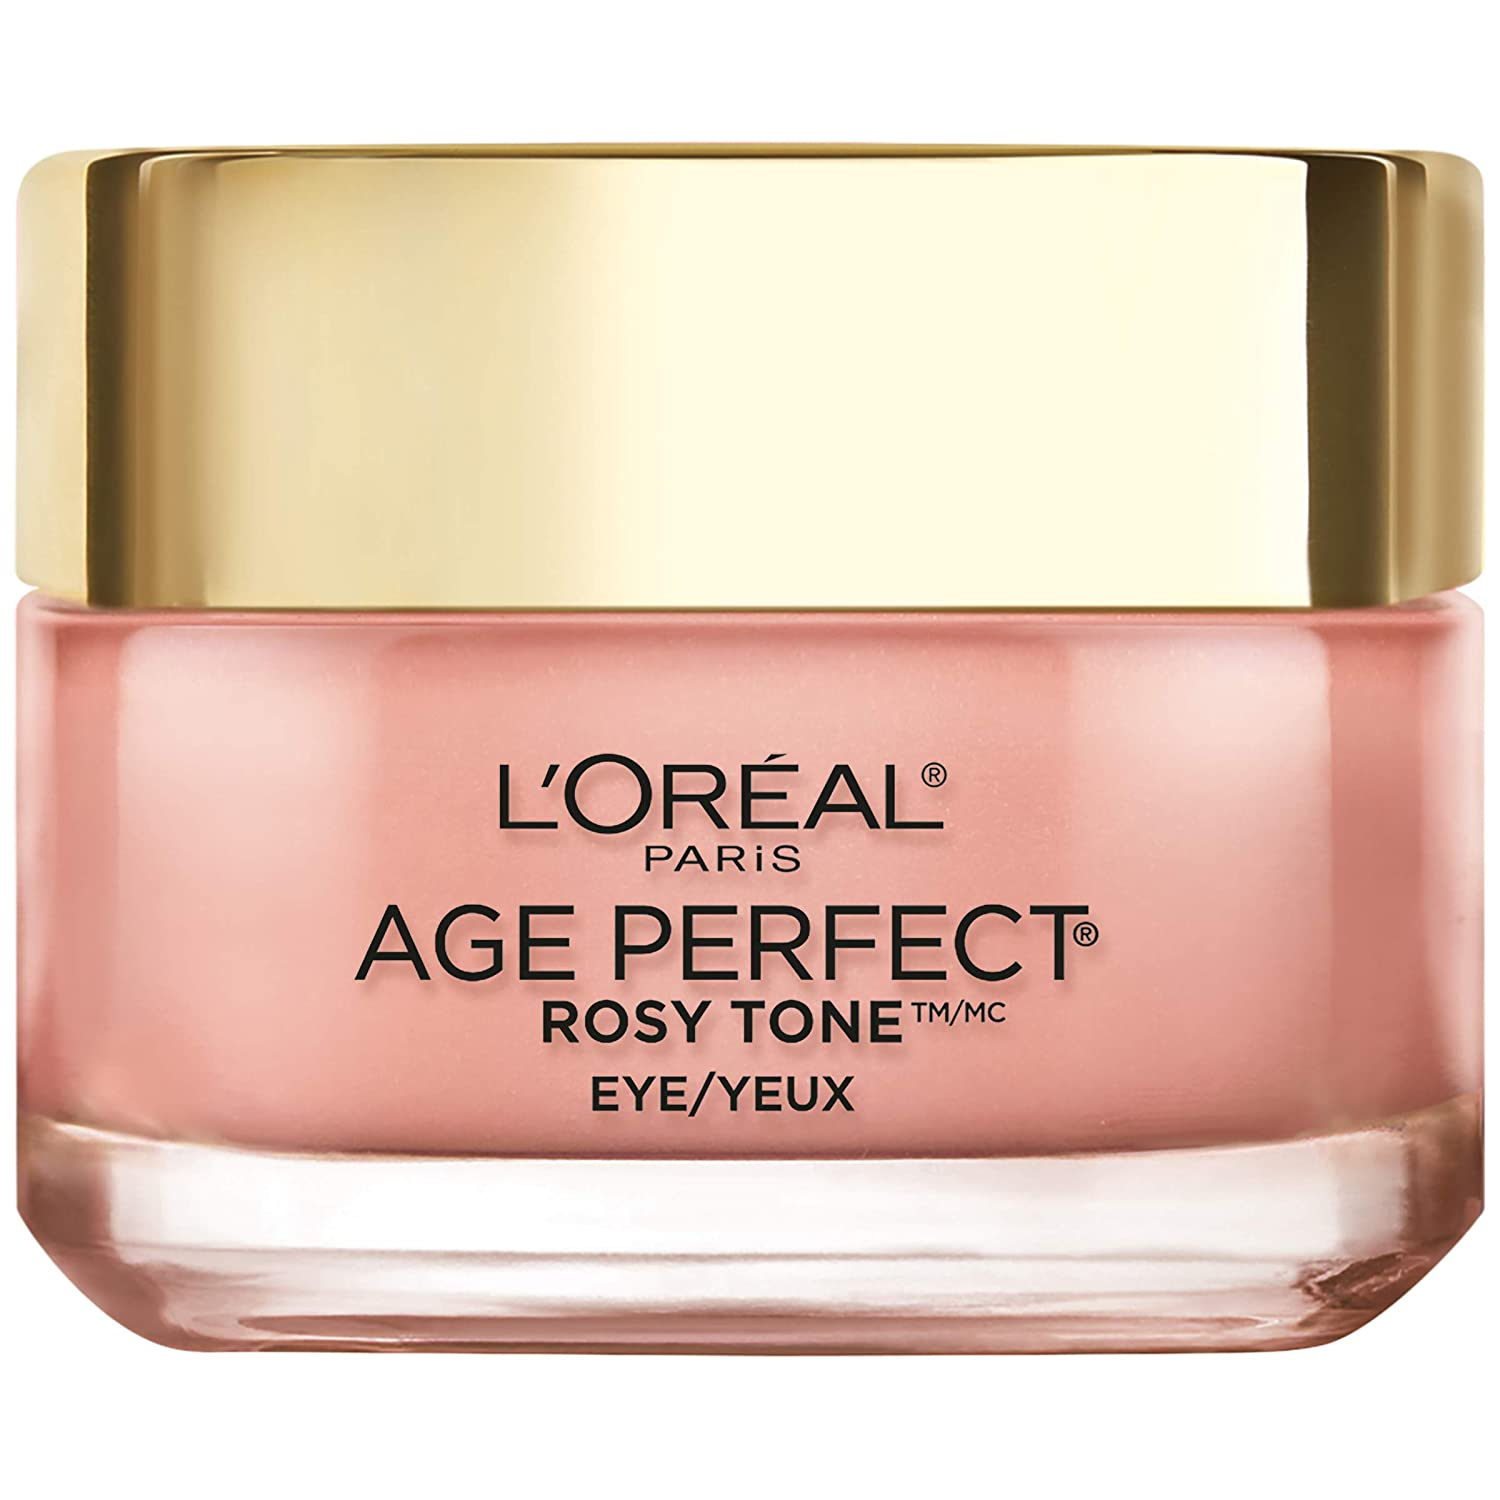 Eye Brightener Eye Cream by L'Oreal Paris Skin Care I Age Perfect Rosy Tone Eye Brightener to Visibly Color Correct Dark Circles I Fragrance Free I 0.5oz